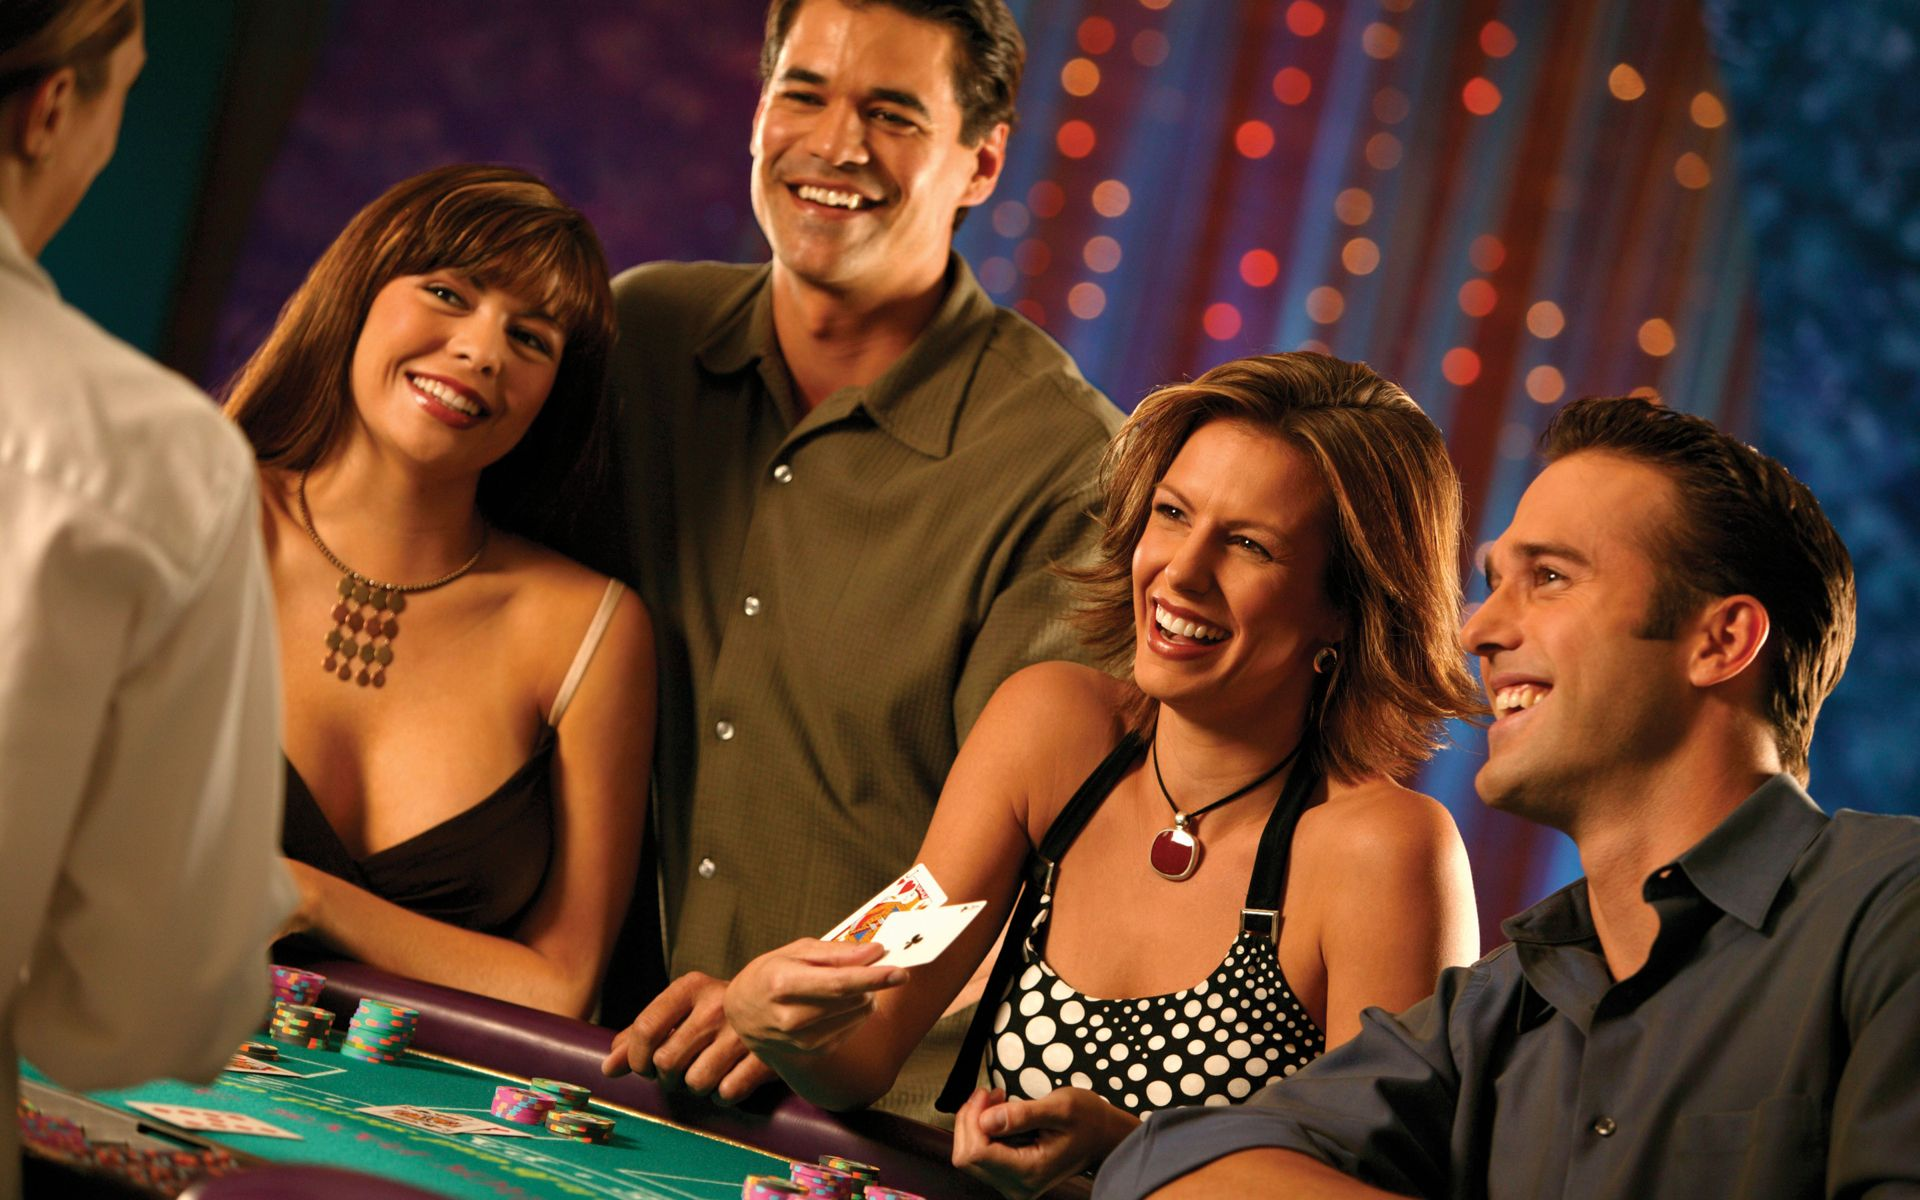 The best payout provided by casino games